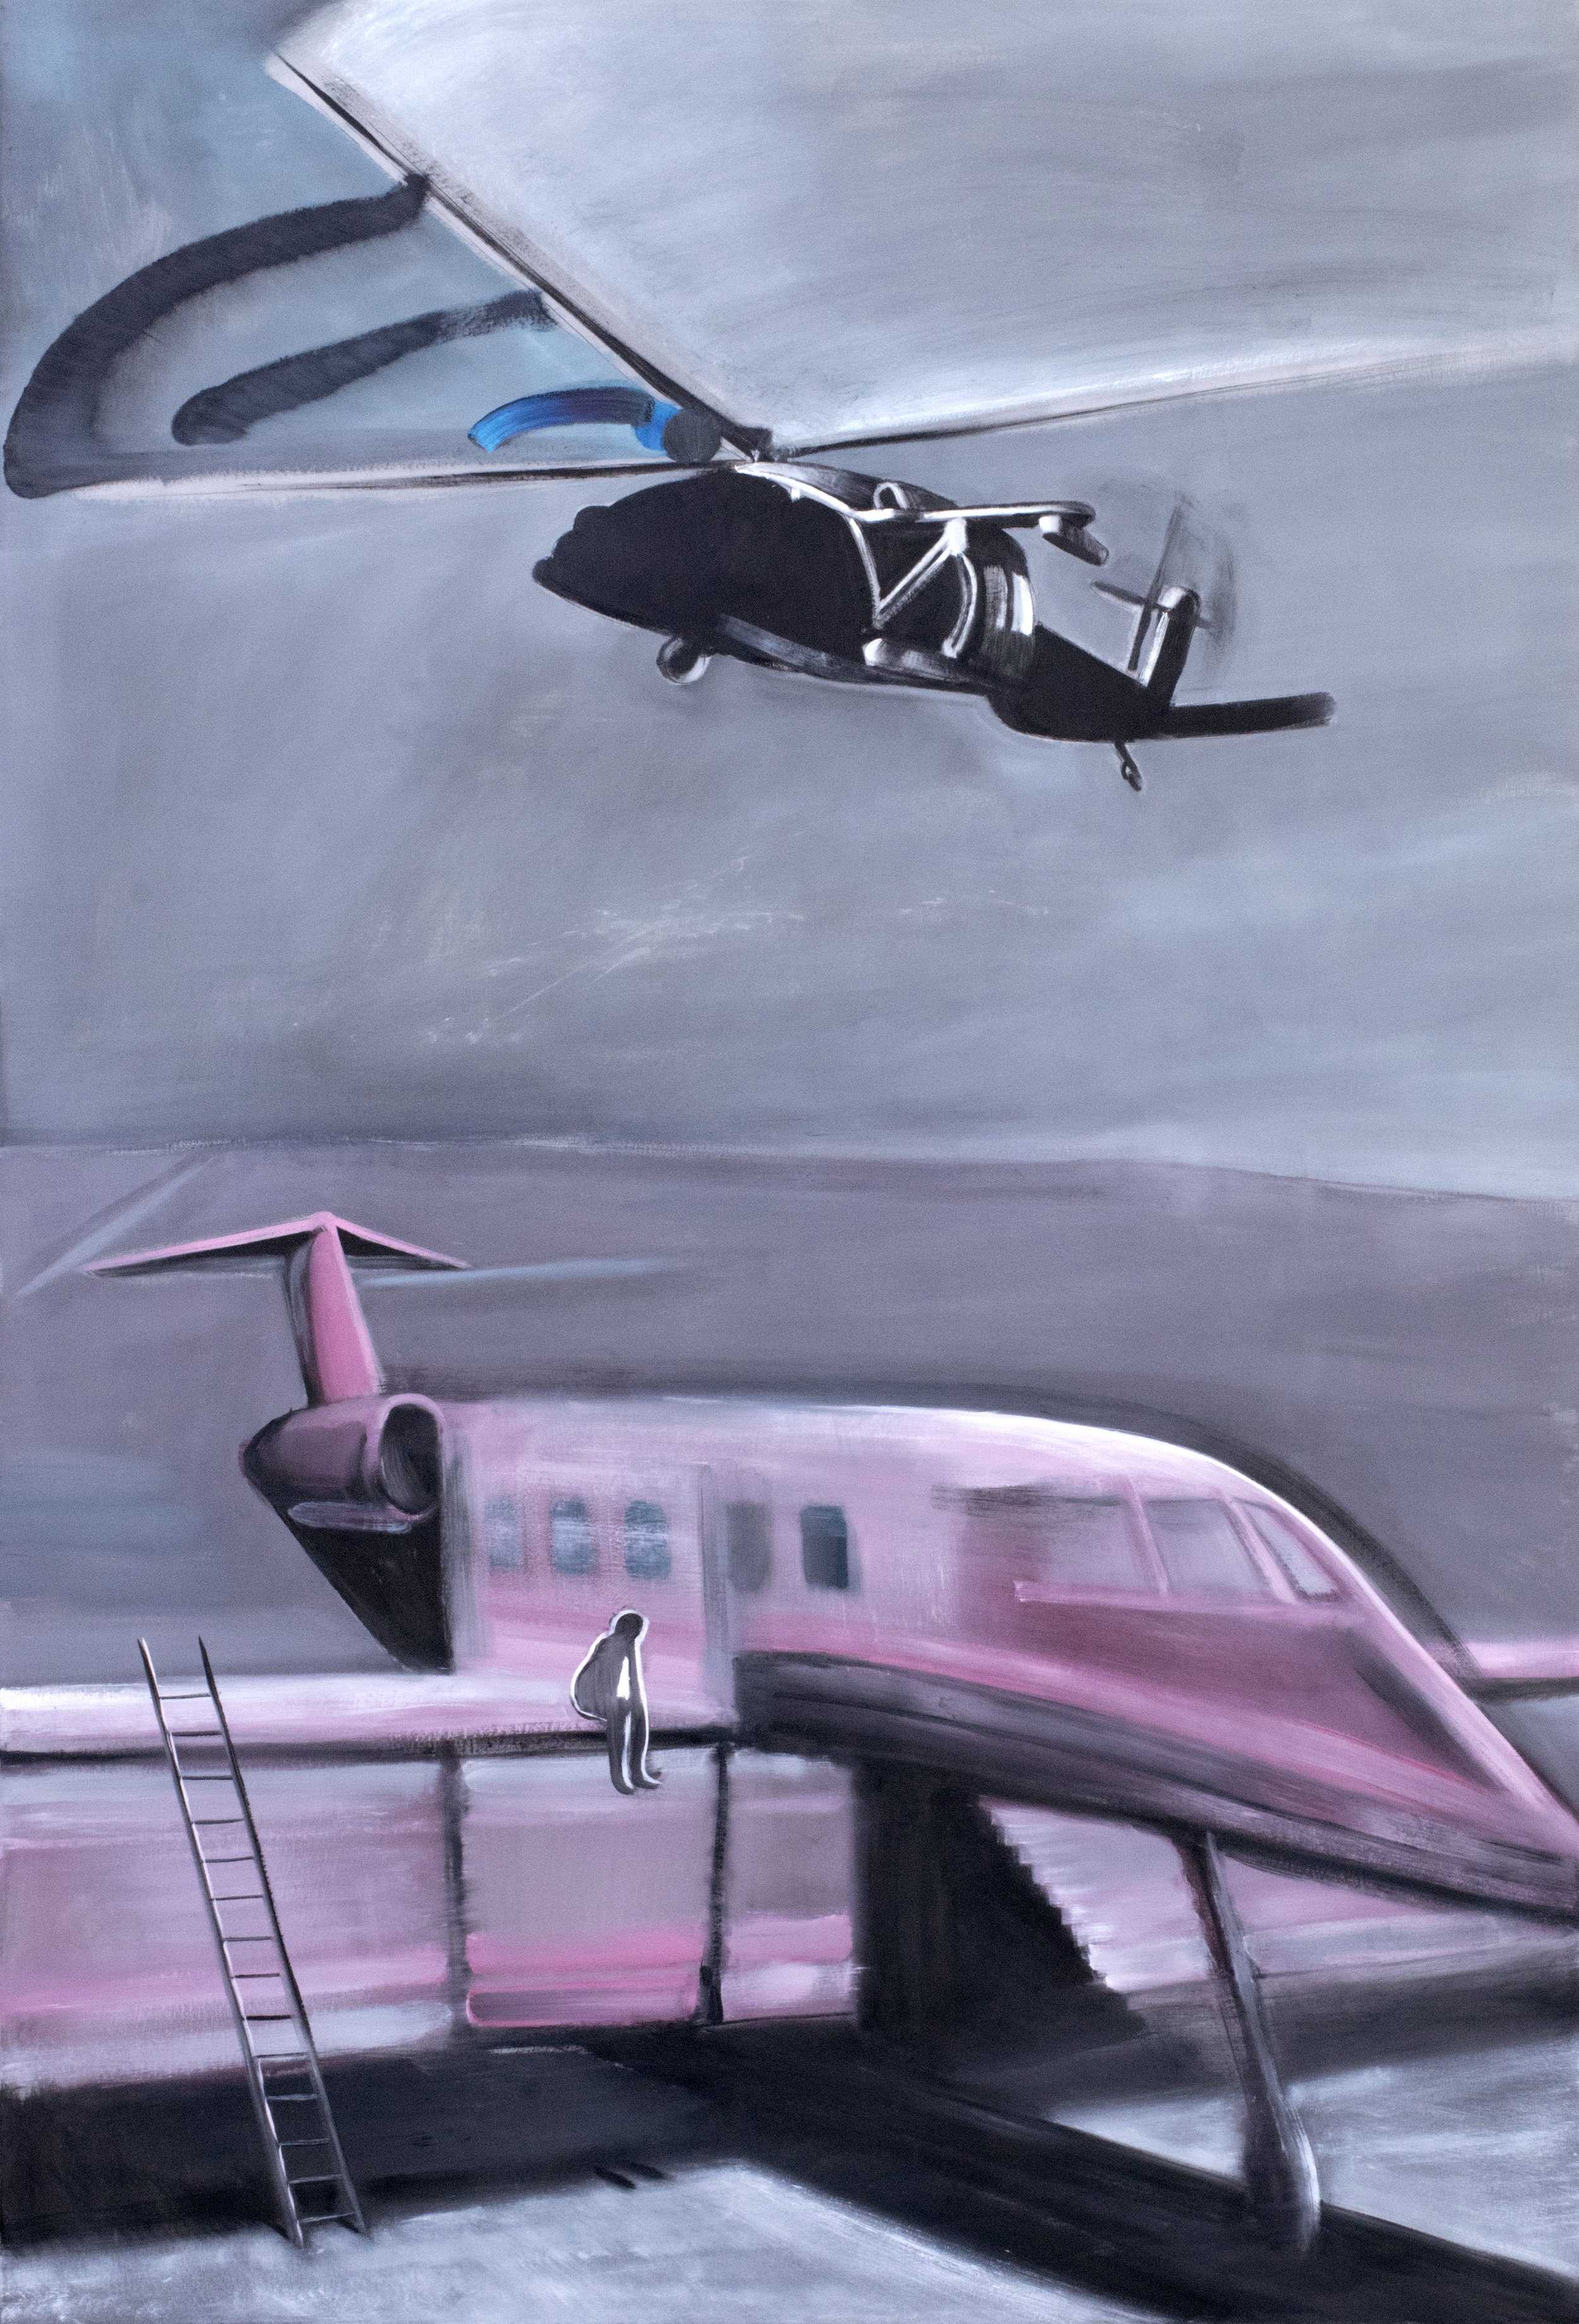 Helicopter and Tender Jet